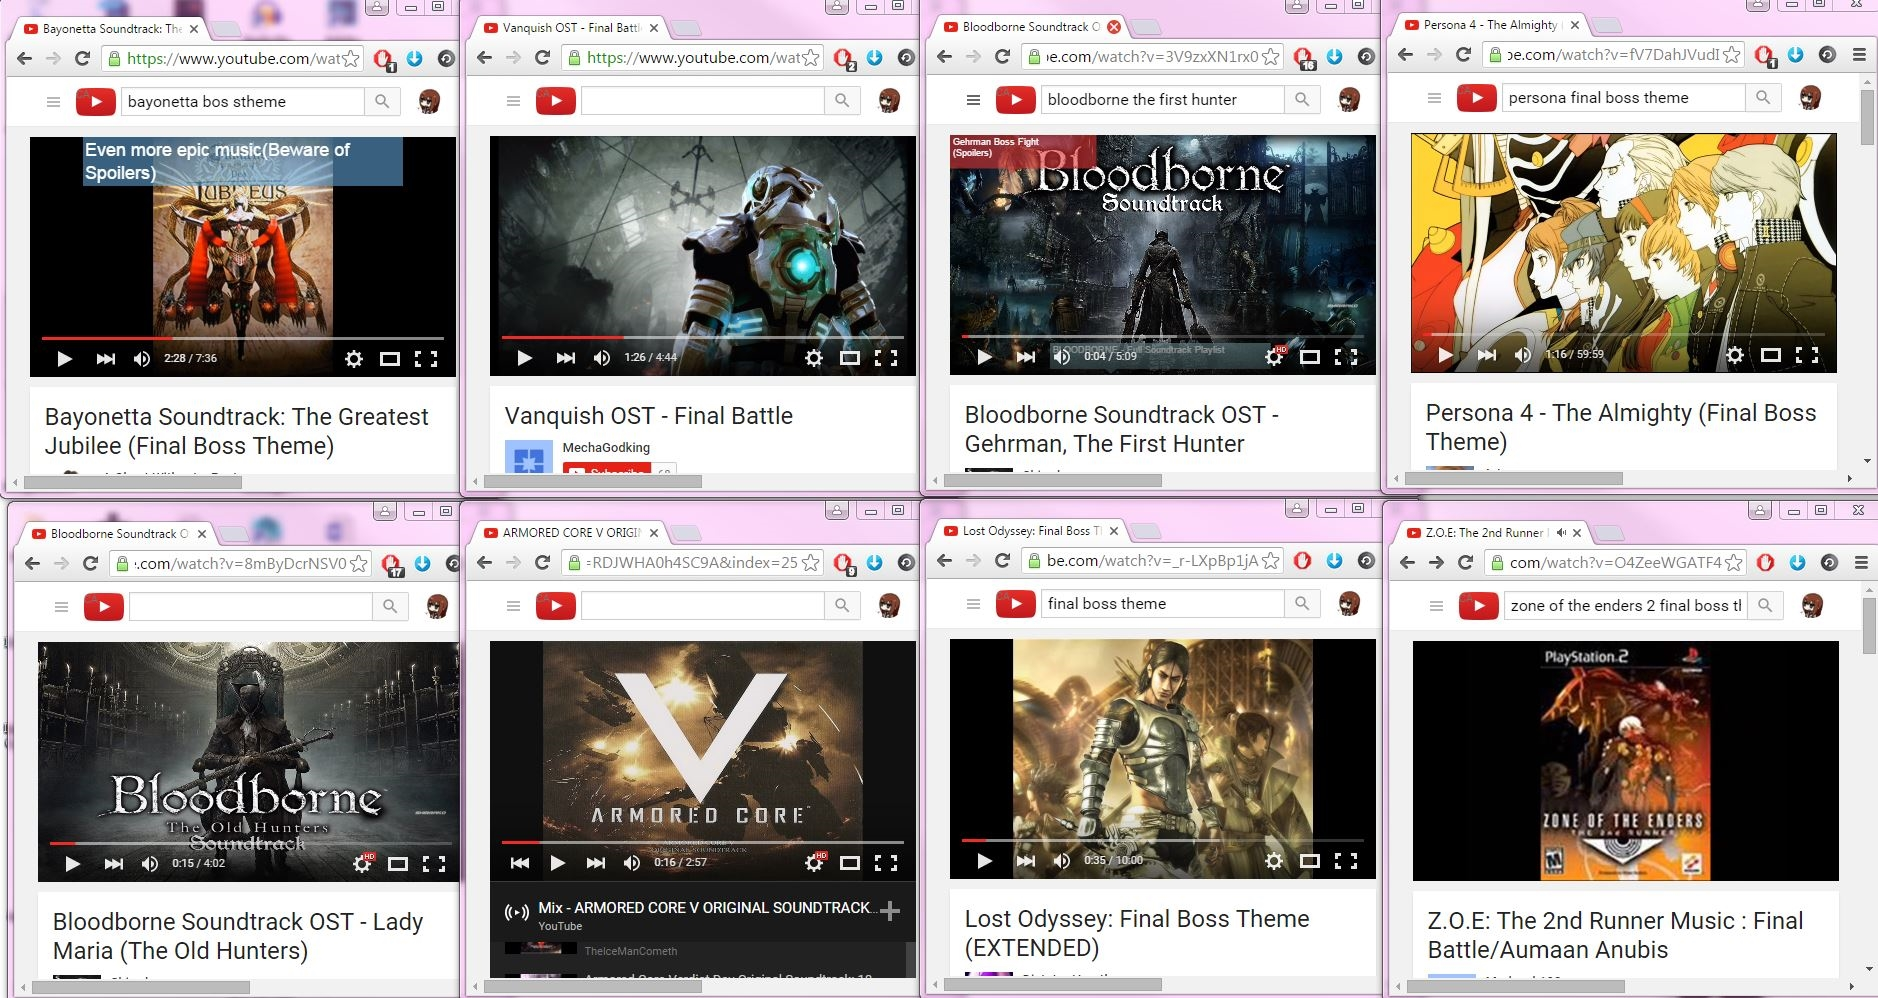 Examples of different video game soundtracks for research purposes.